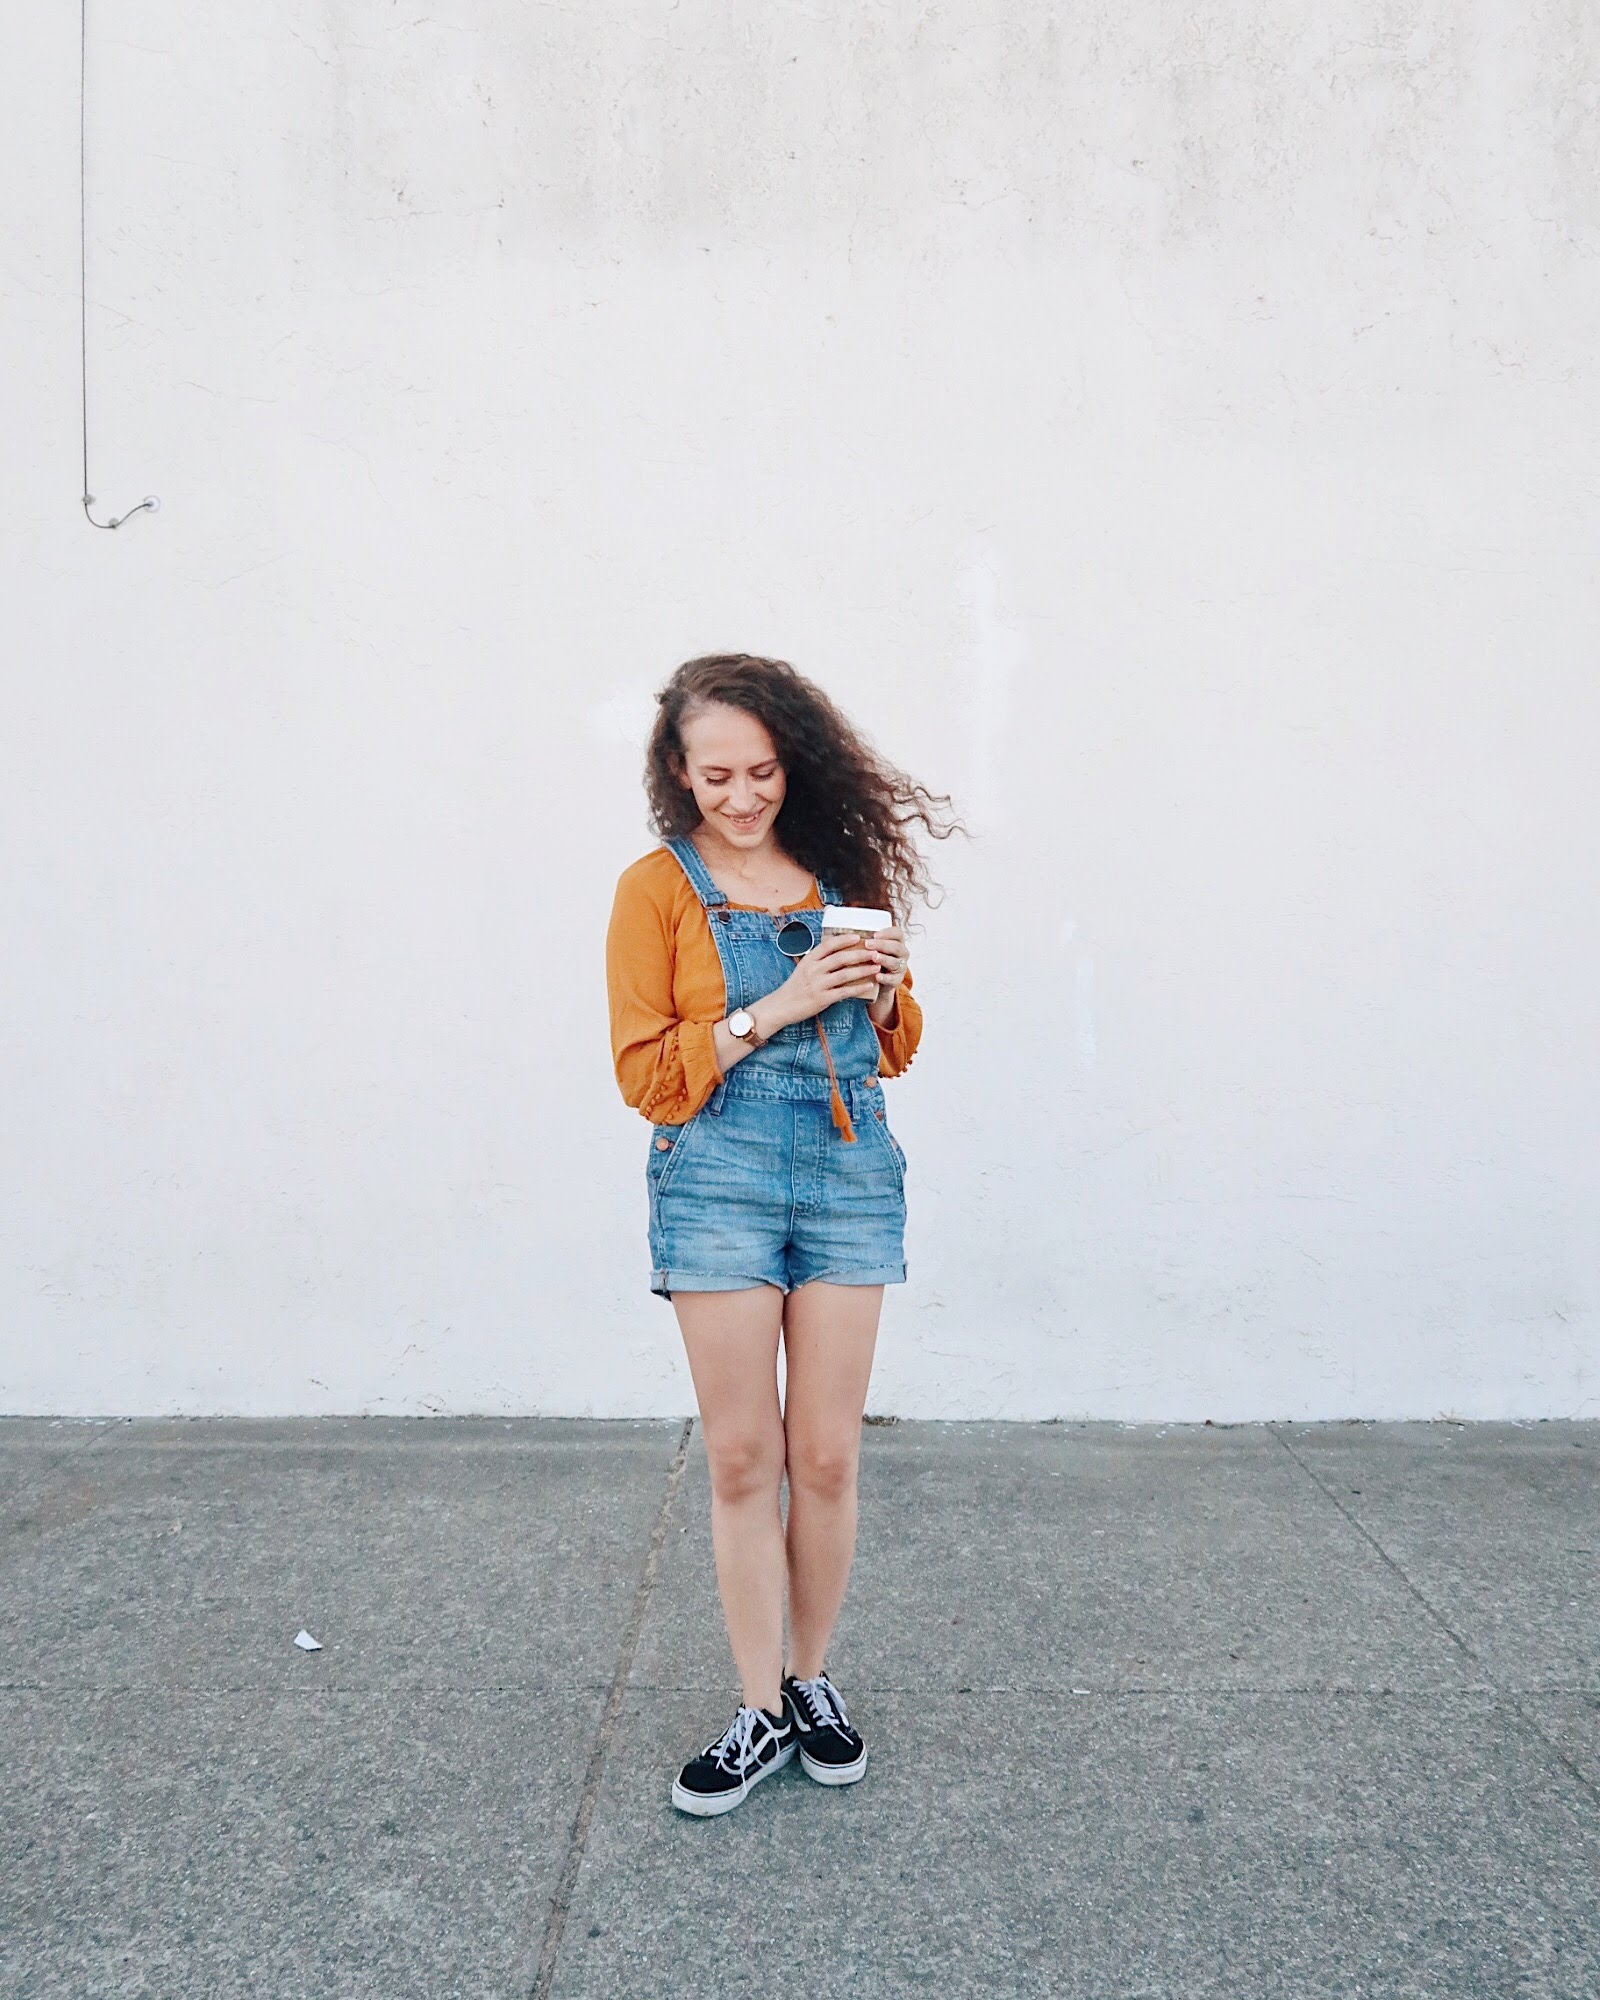 san francisco outfit / how to wear overalls — wearing madewell denim short overalls, boho rust colored top from old navy, and vans old skool sneakers / tinted-green.com